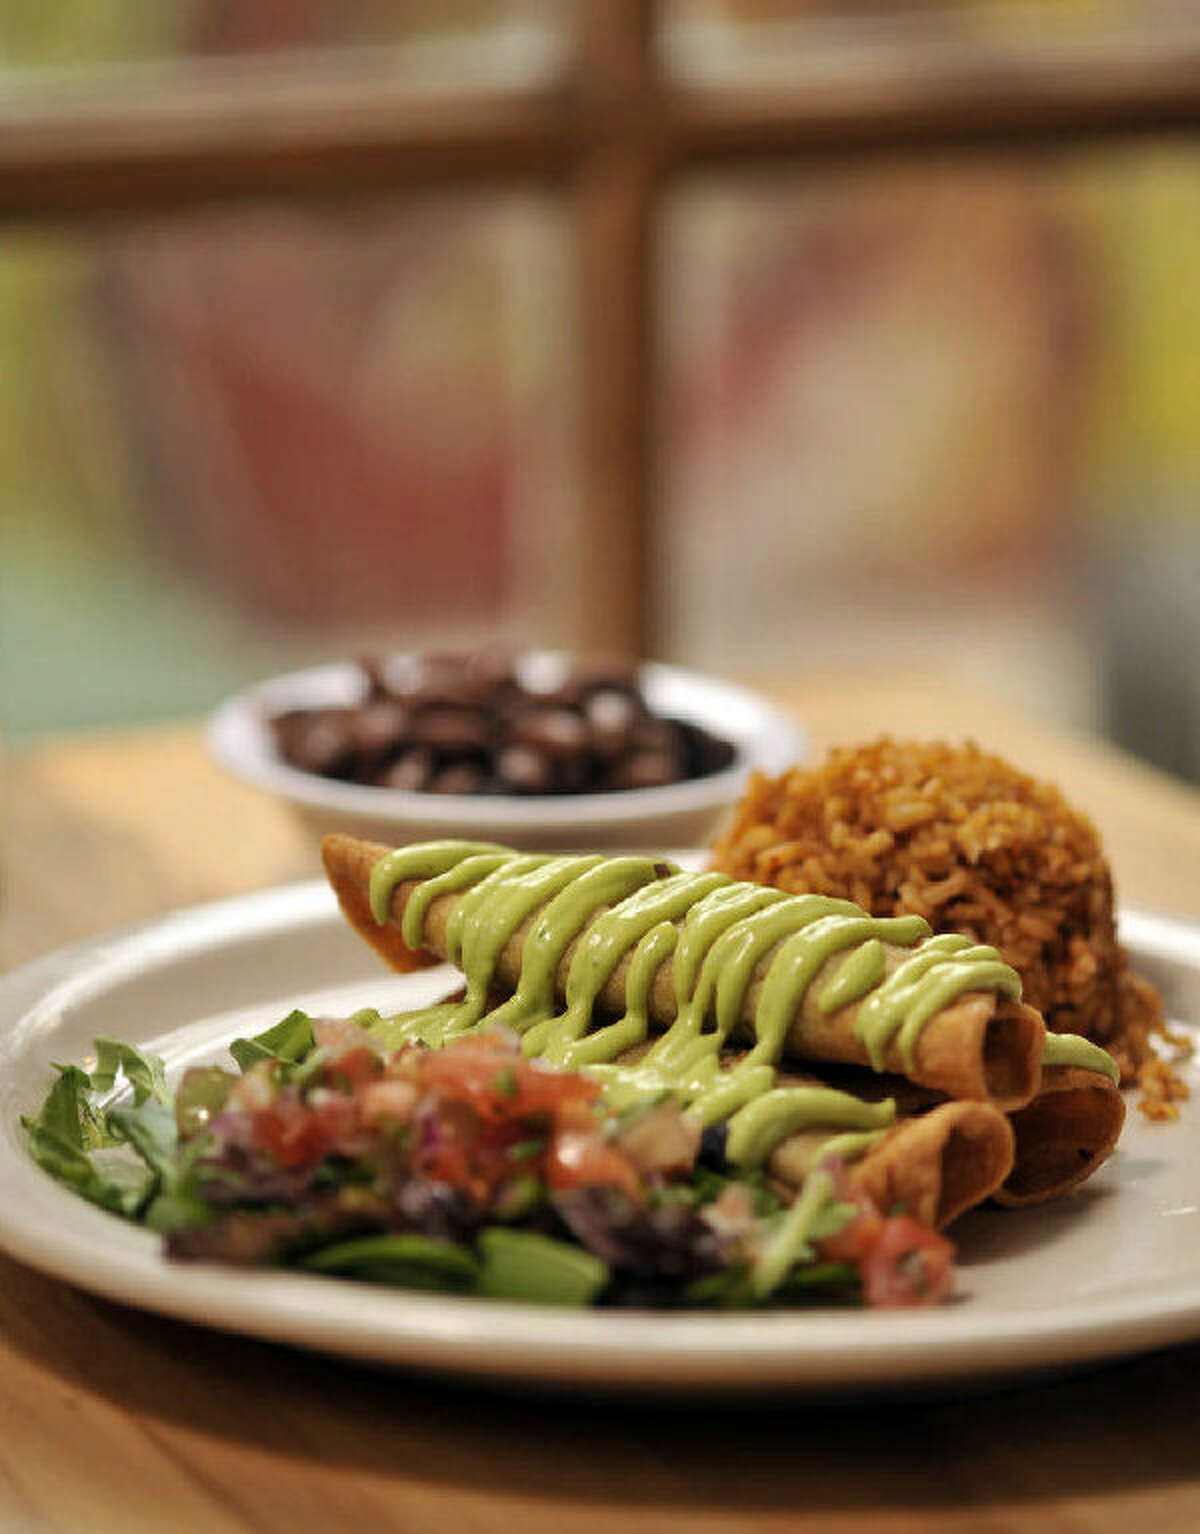 The flauta plate is served with Spanish rice at Green Vegetarian Cuisine.